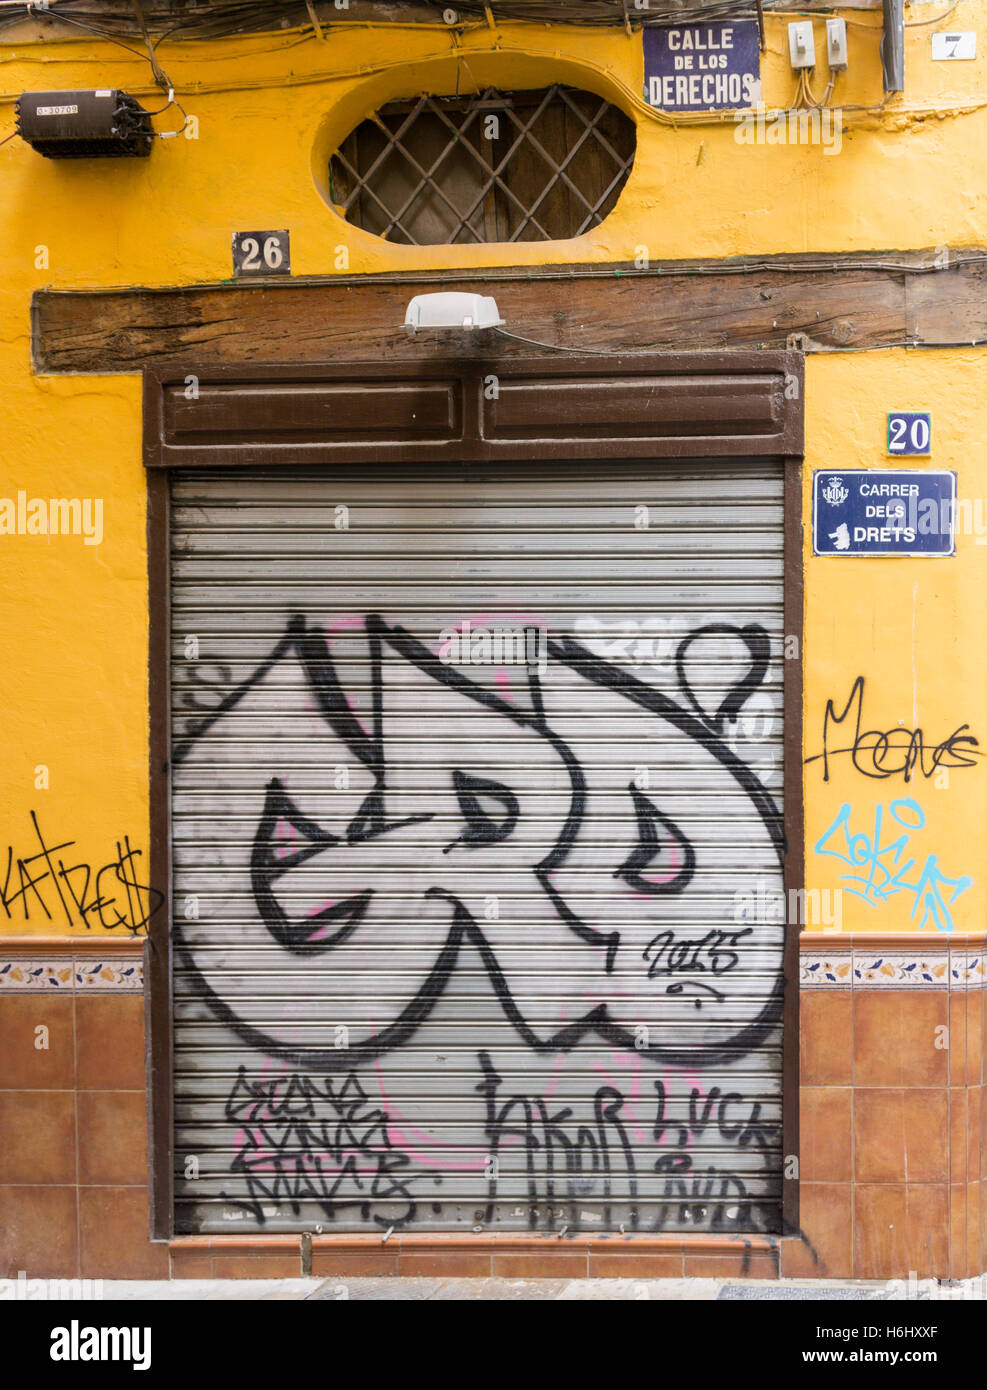 Spray painted graffiti on a closed shutter and street signs in Catalan and Spanish - Stock Image